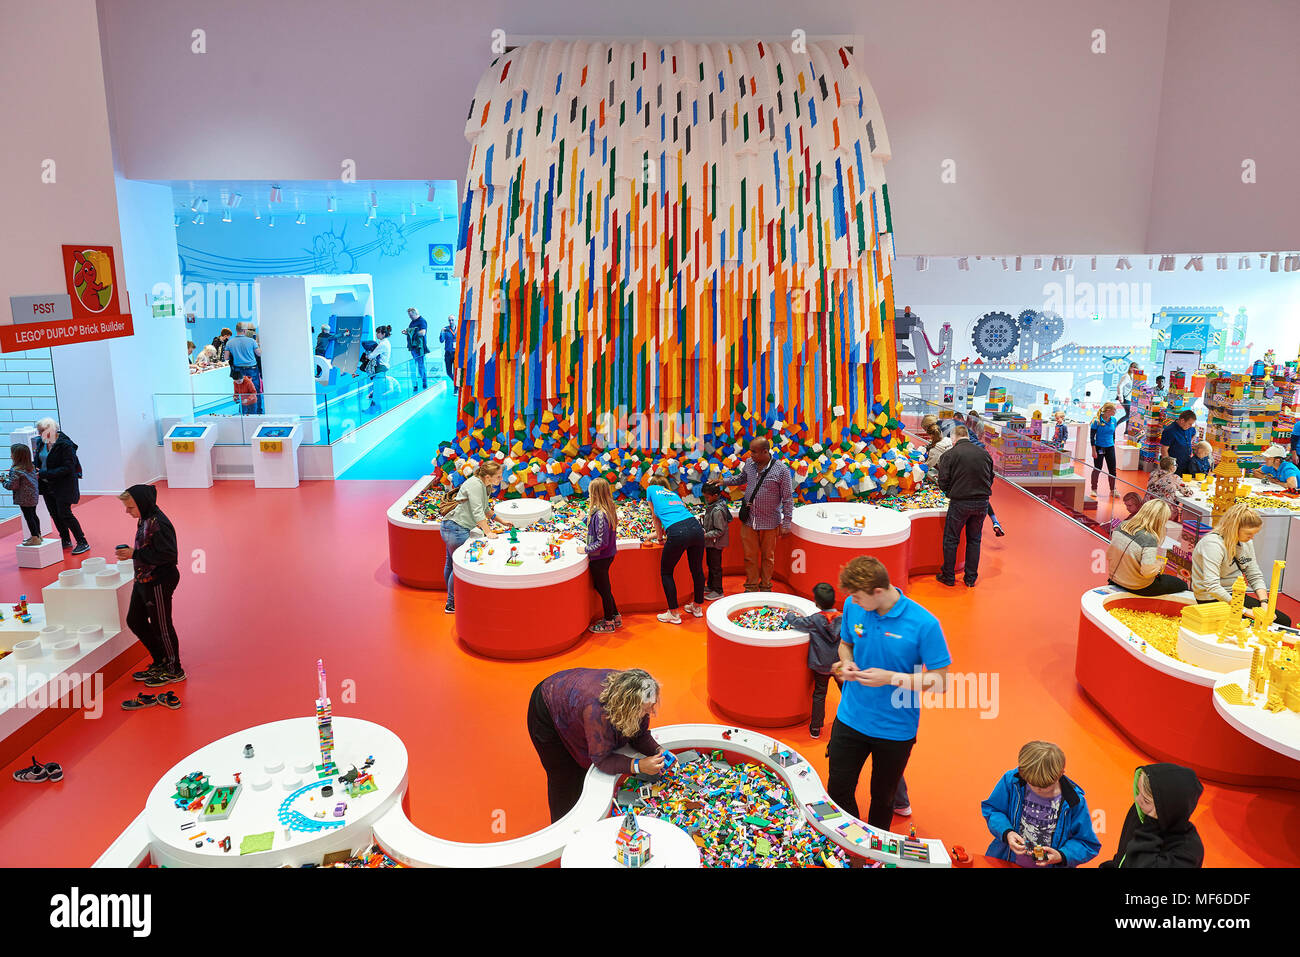 Lego House Billund Denmark Stock Photo 181465803 Alamy